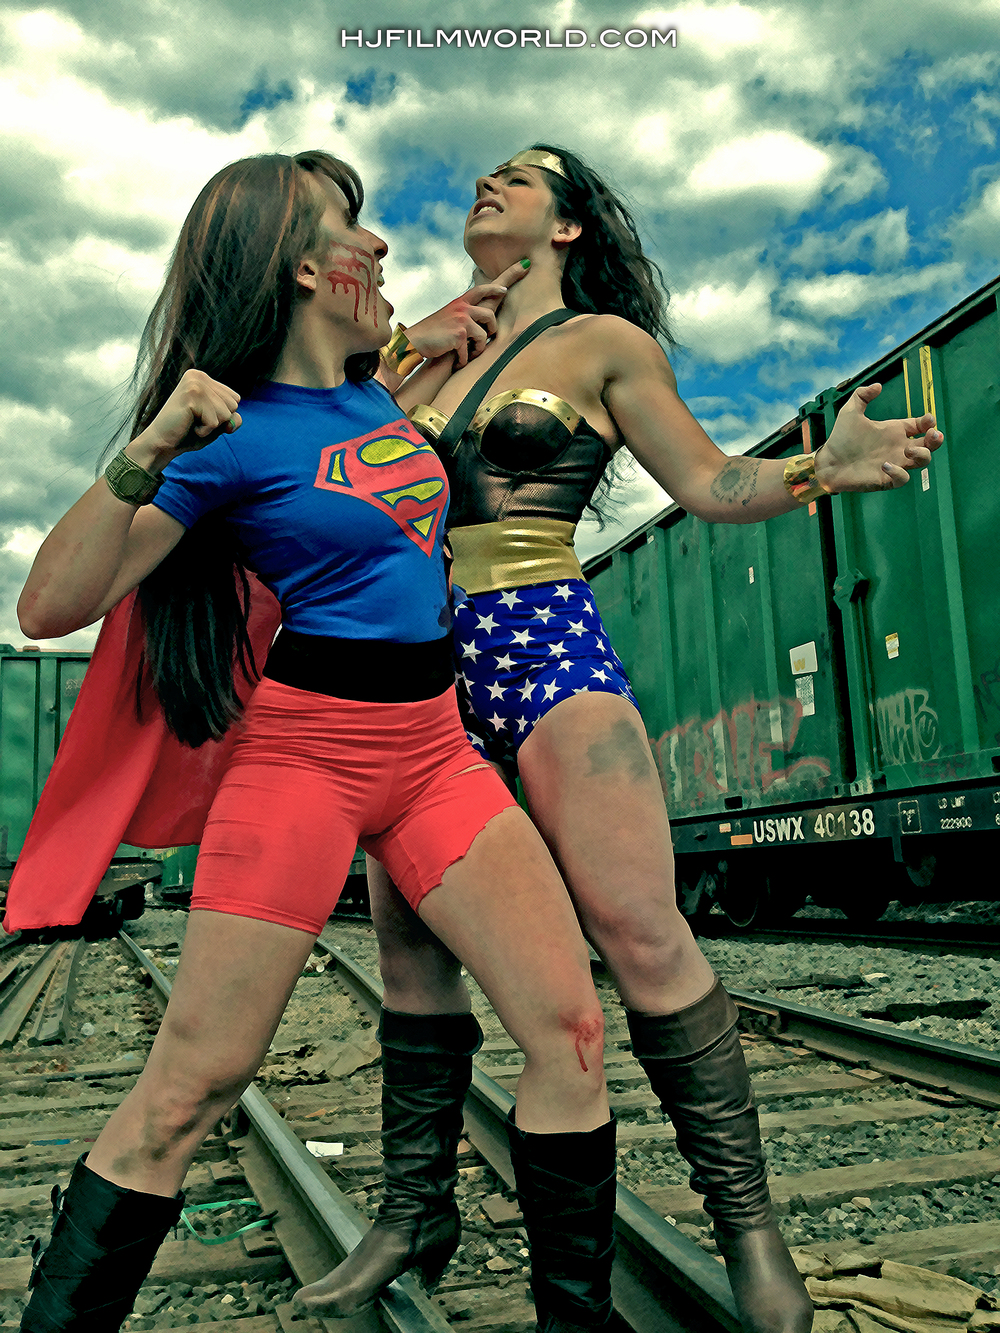 Models: Cindy Suarez and Jessica Foard